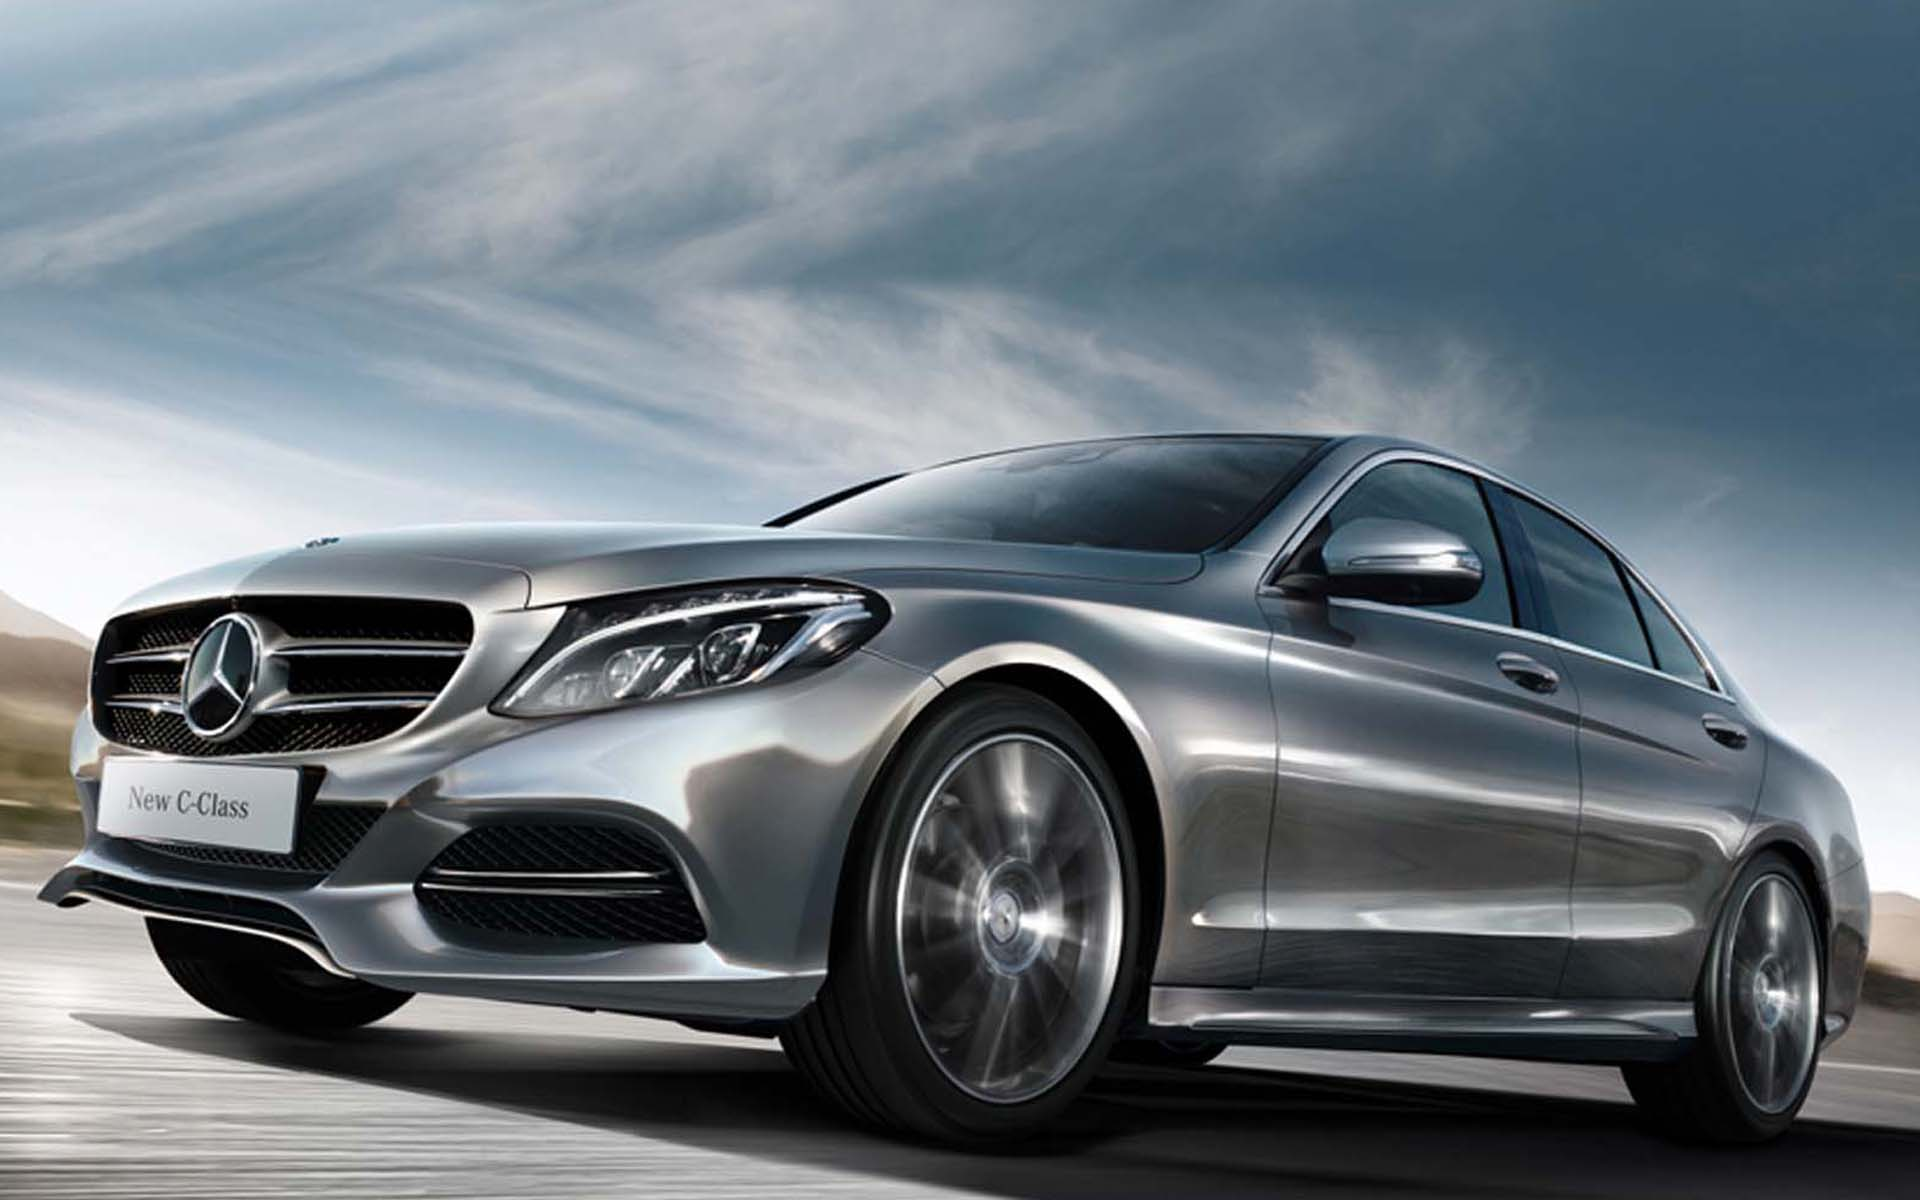 mercedes benz launches c220 cdi for rs 39 9 lakh shifting gears. Black Bedroom Furniture Sets. Home Design Ideas